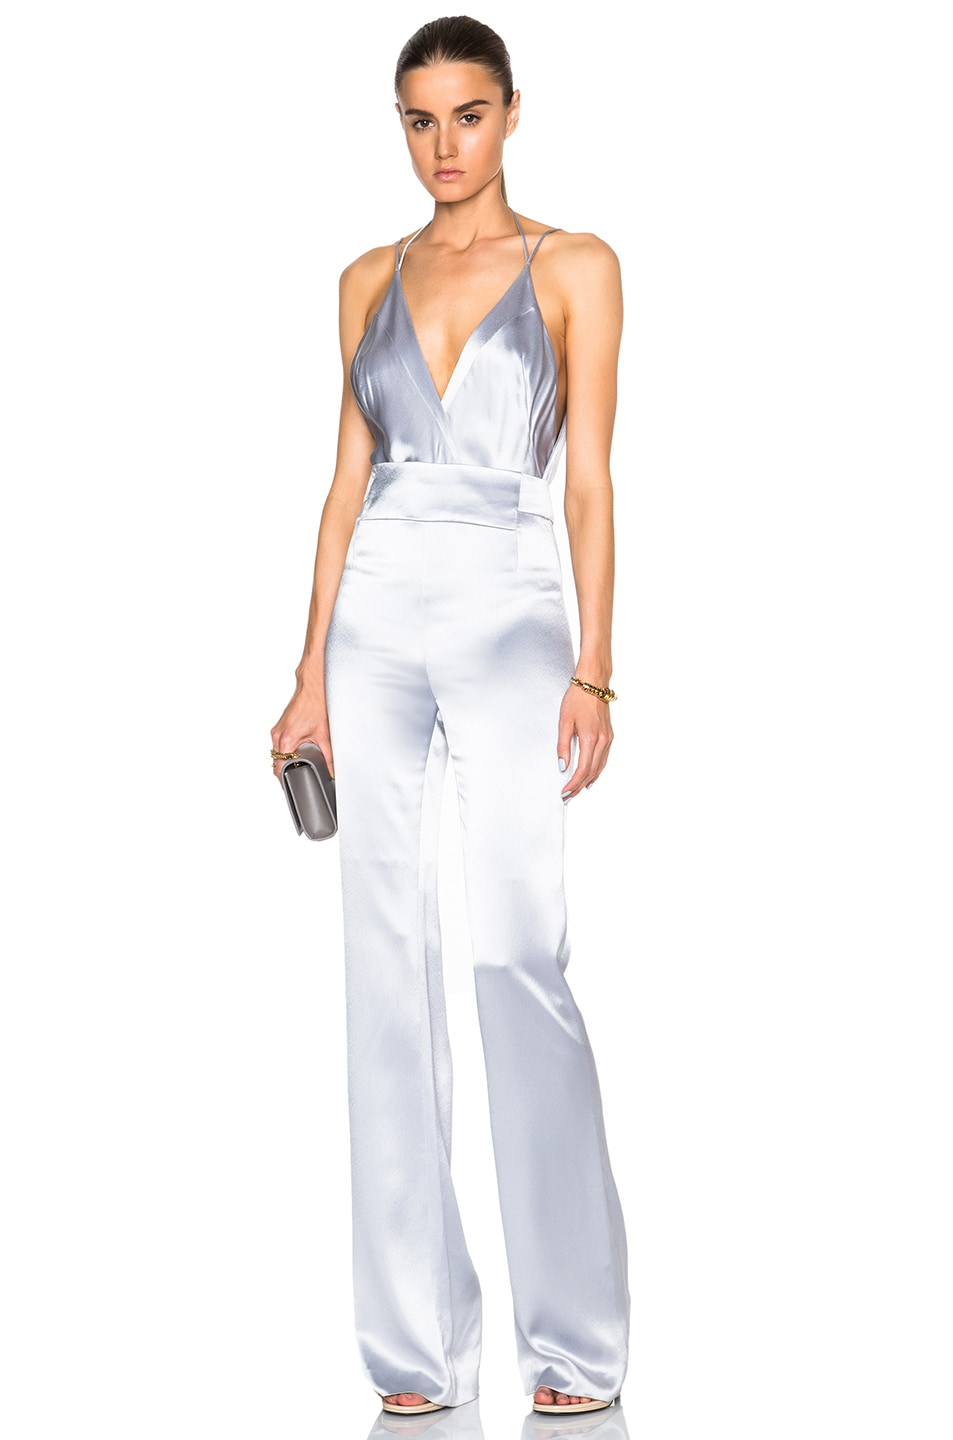 GALVAN Satin Plunge Neck Jumpsuit in Silver Grey | FWRD